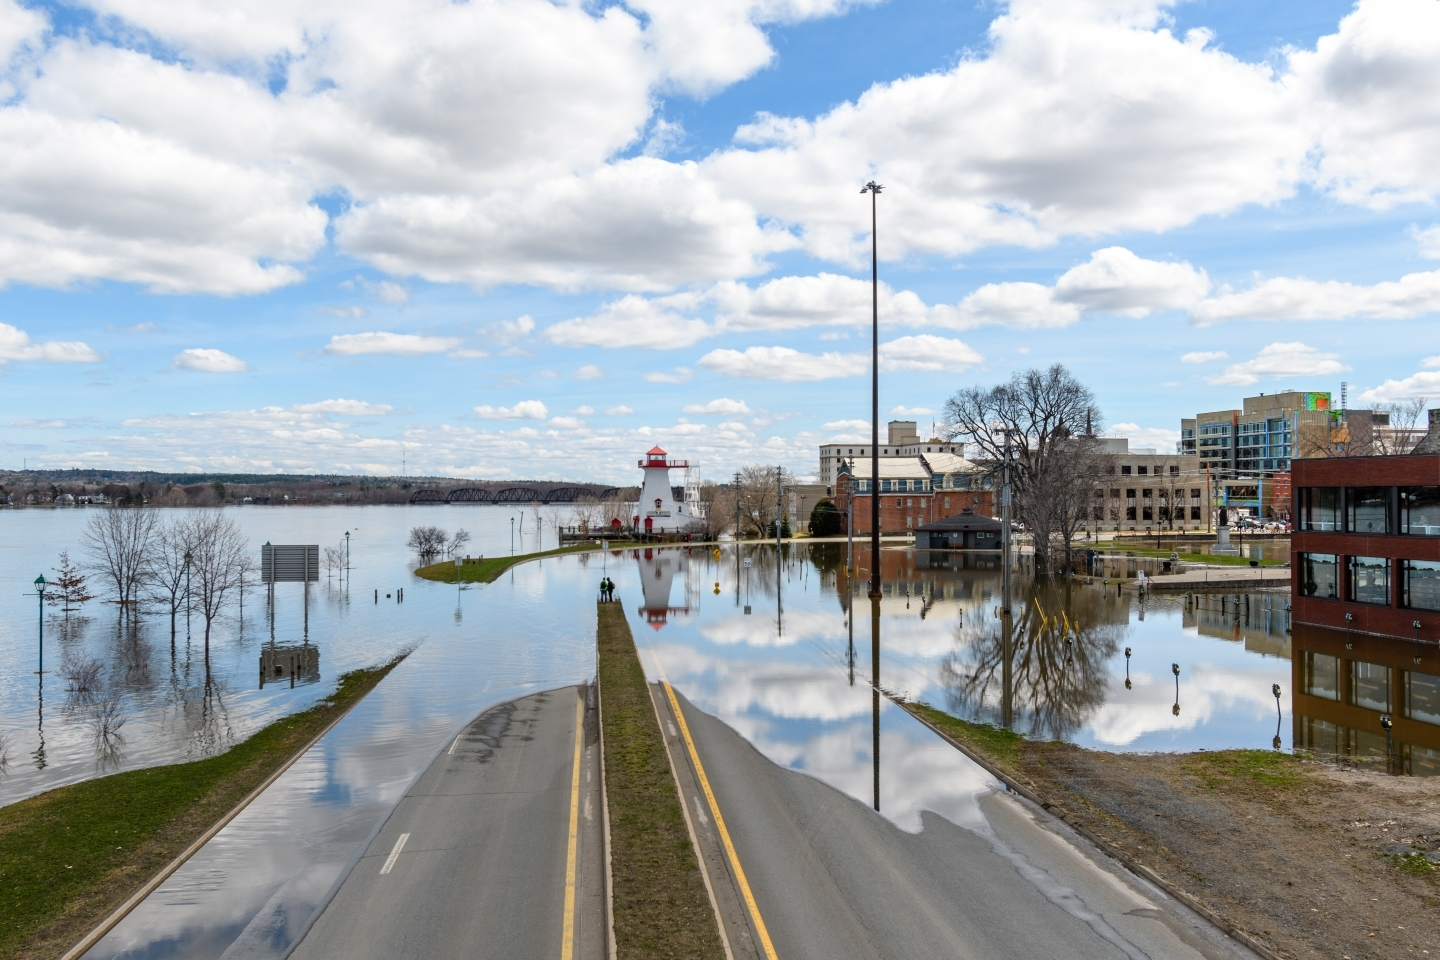 Flooding in Fredericton, New Brunswick. (Shutterstock)